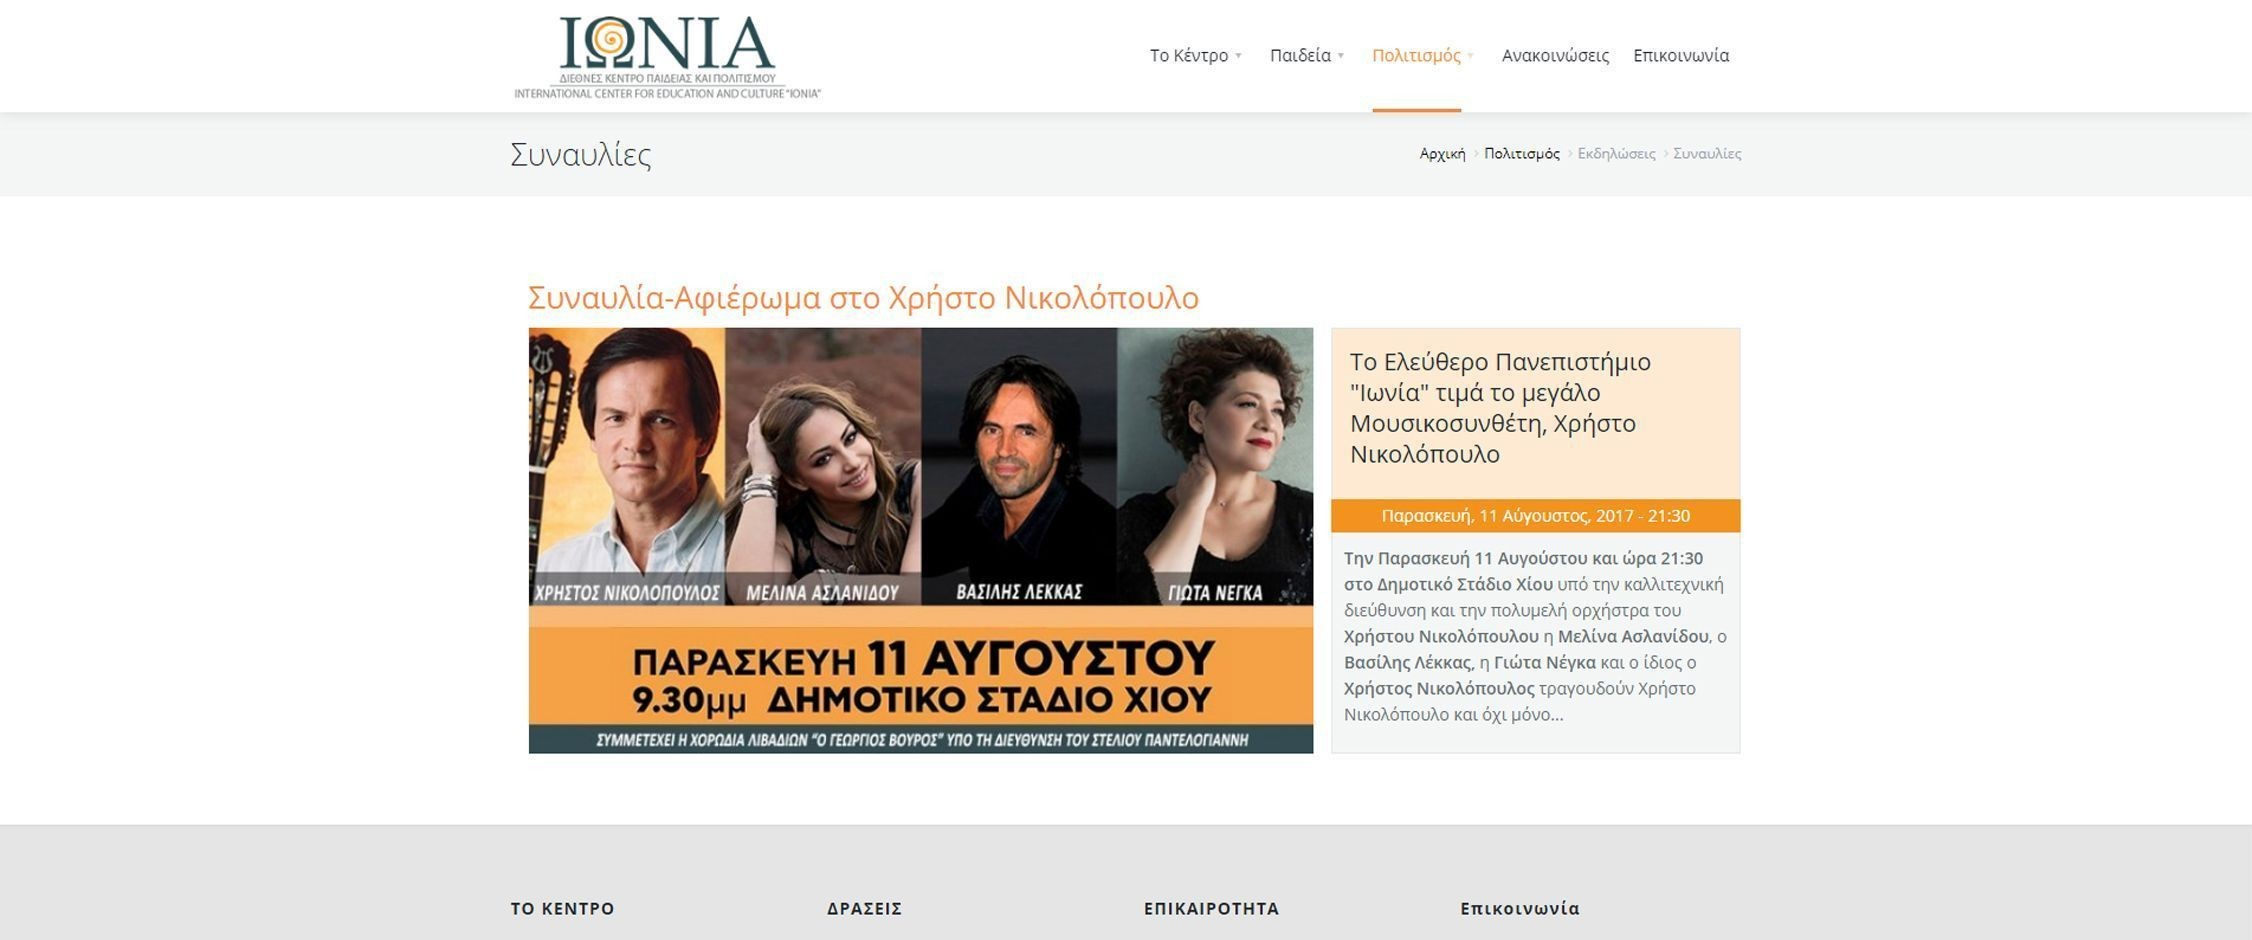 ionia-culture TruthWebMedia project